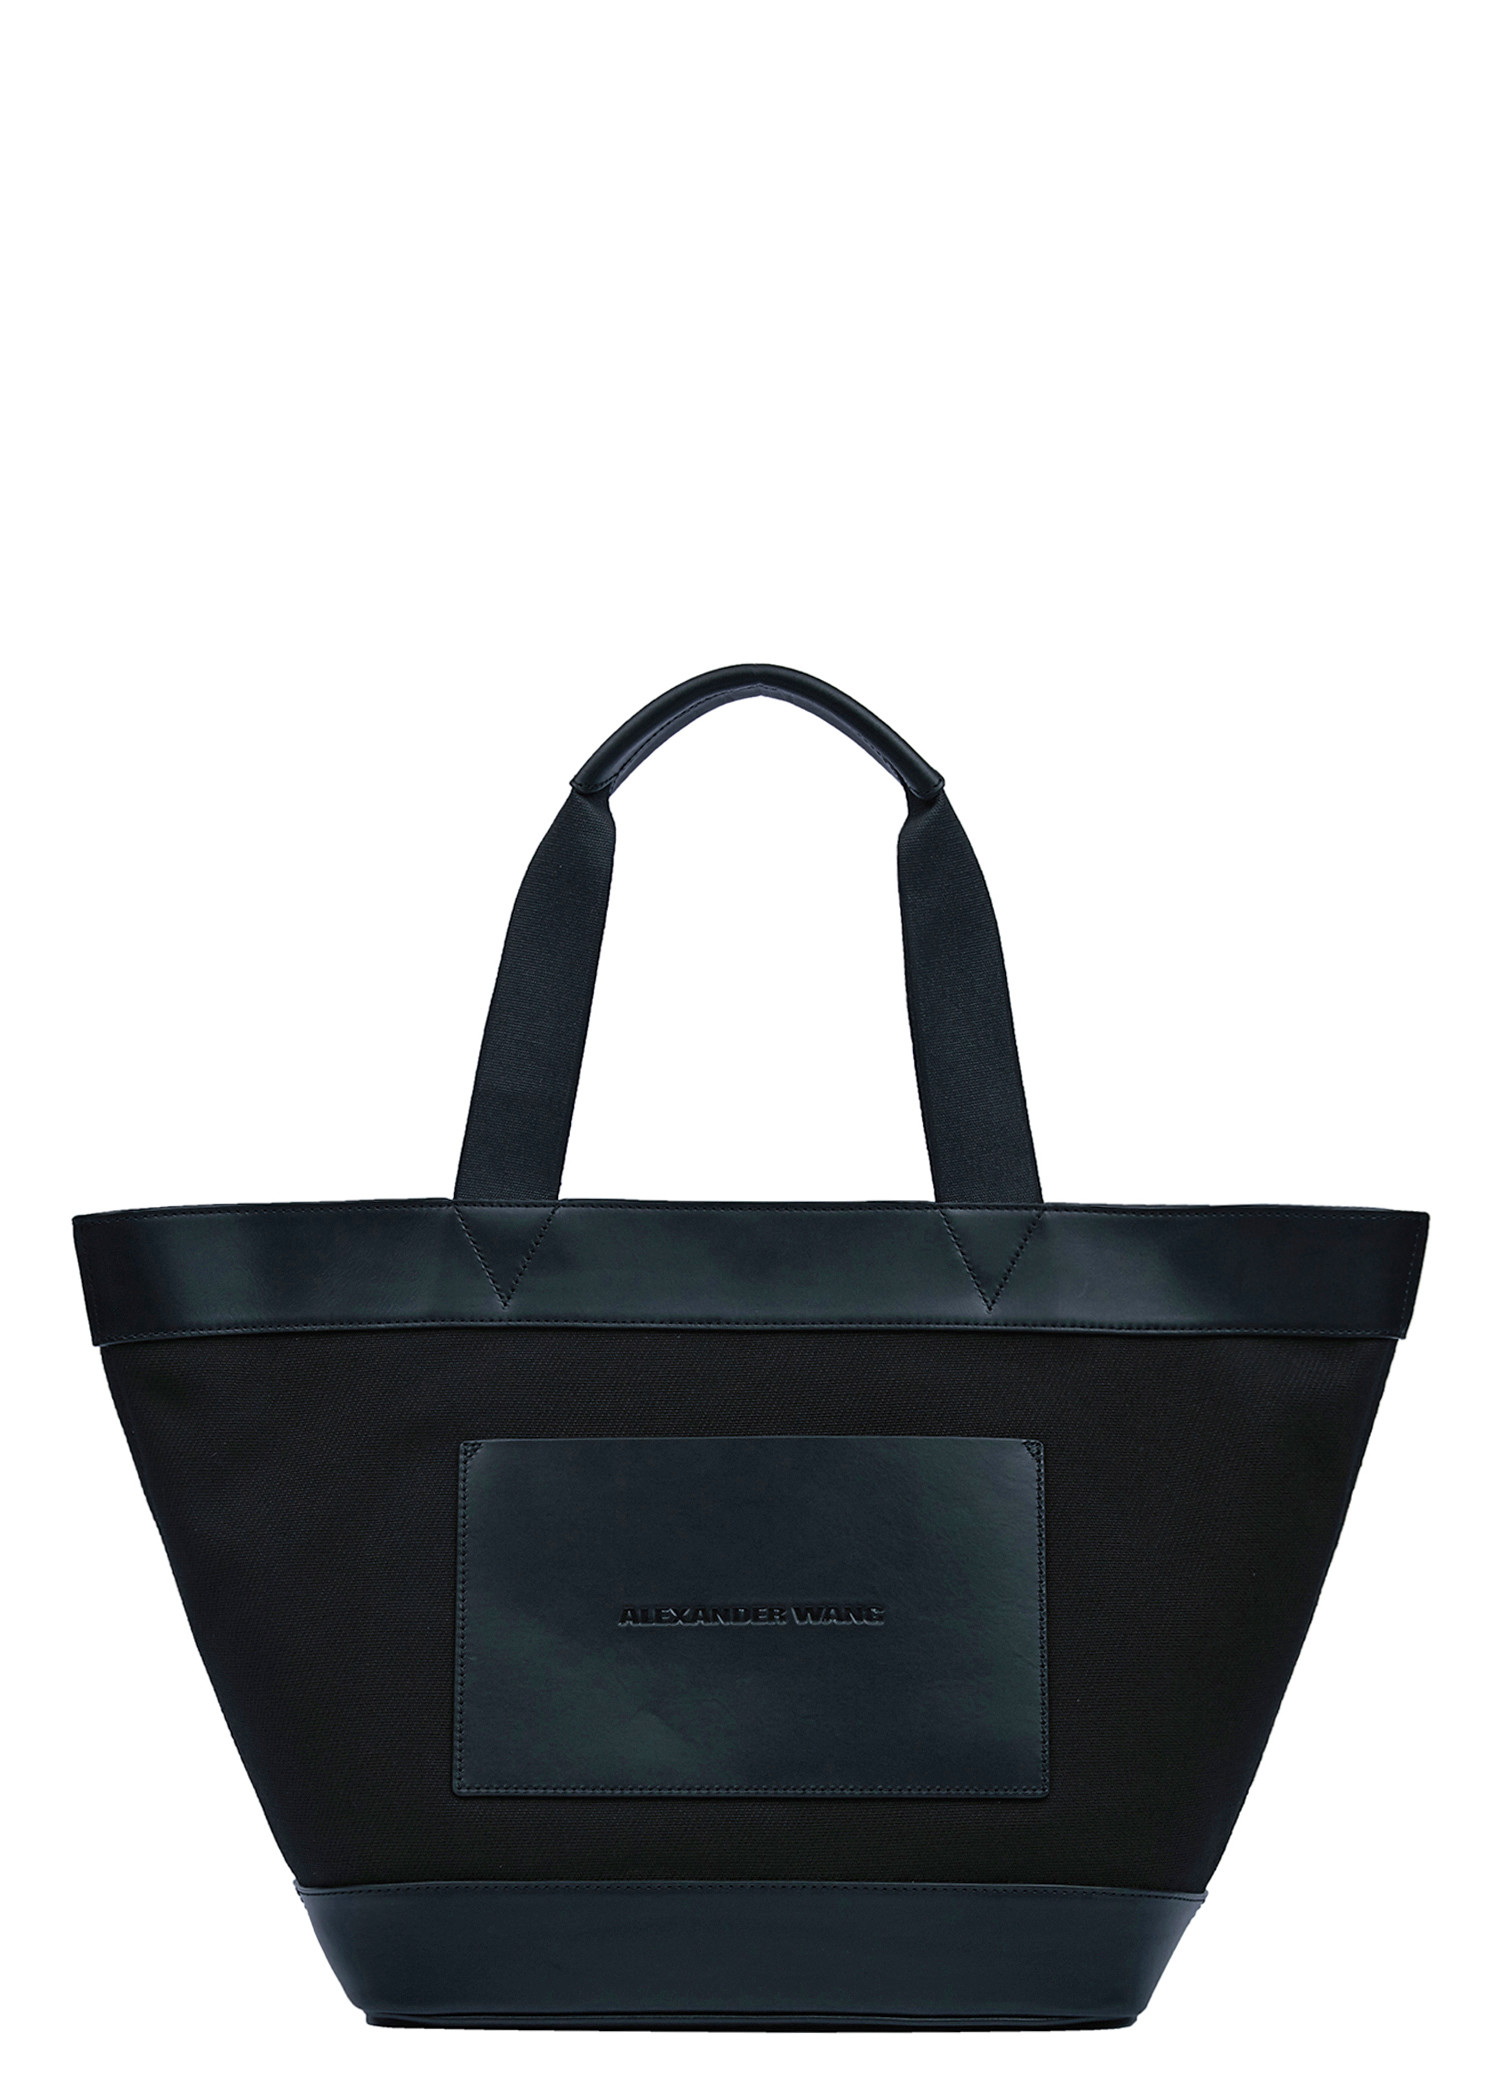 Alexander Wang Canvas Large Tote In Black